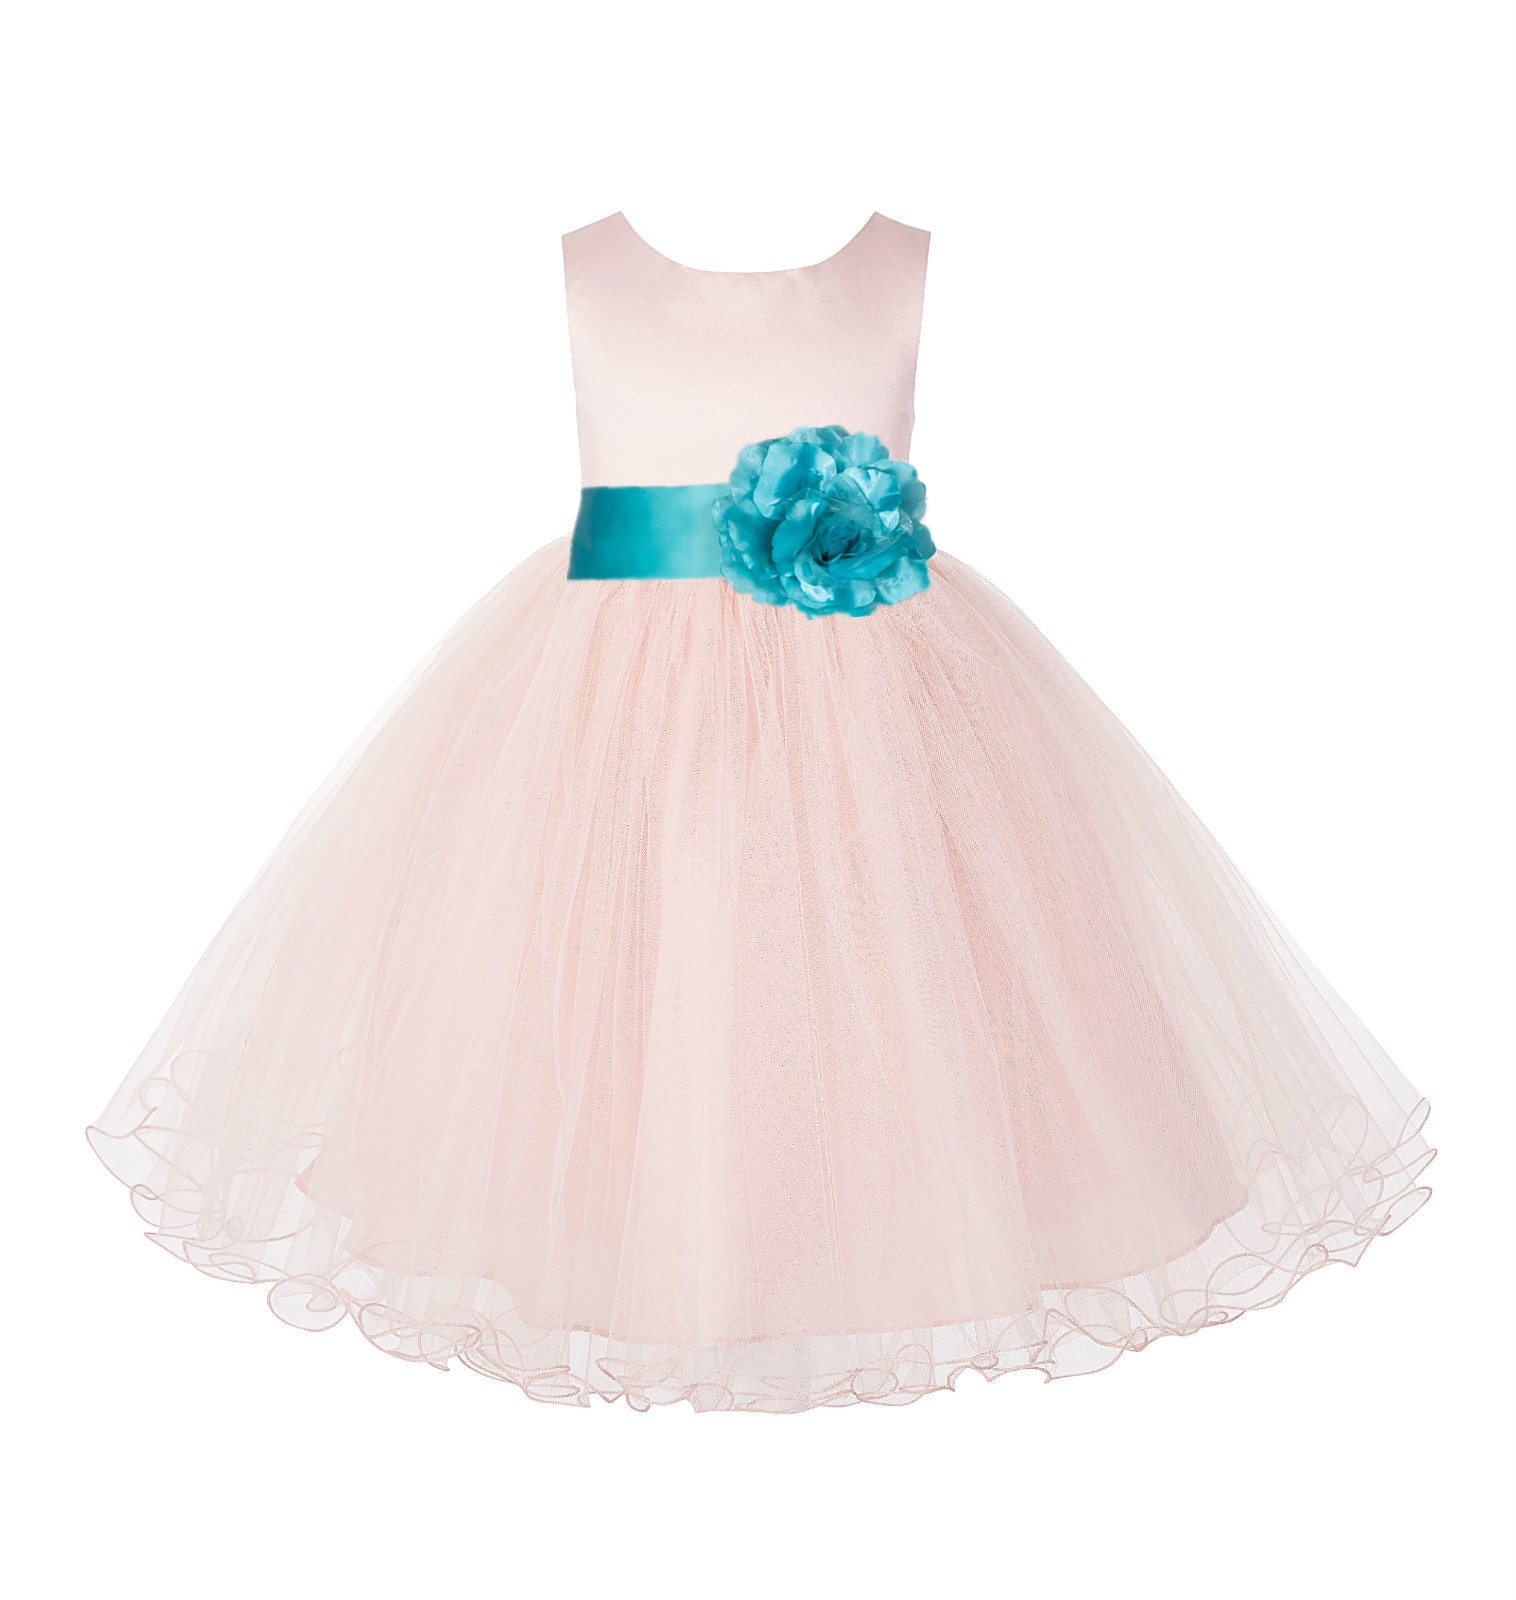 Blush Pink /Tiffany Tulle Rattail Edge Flower Girl Dress Pageant Recital 829S